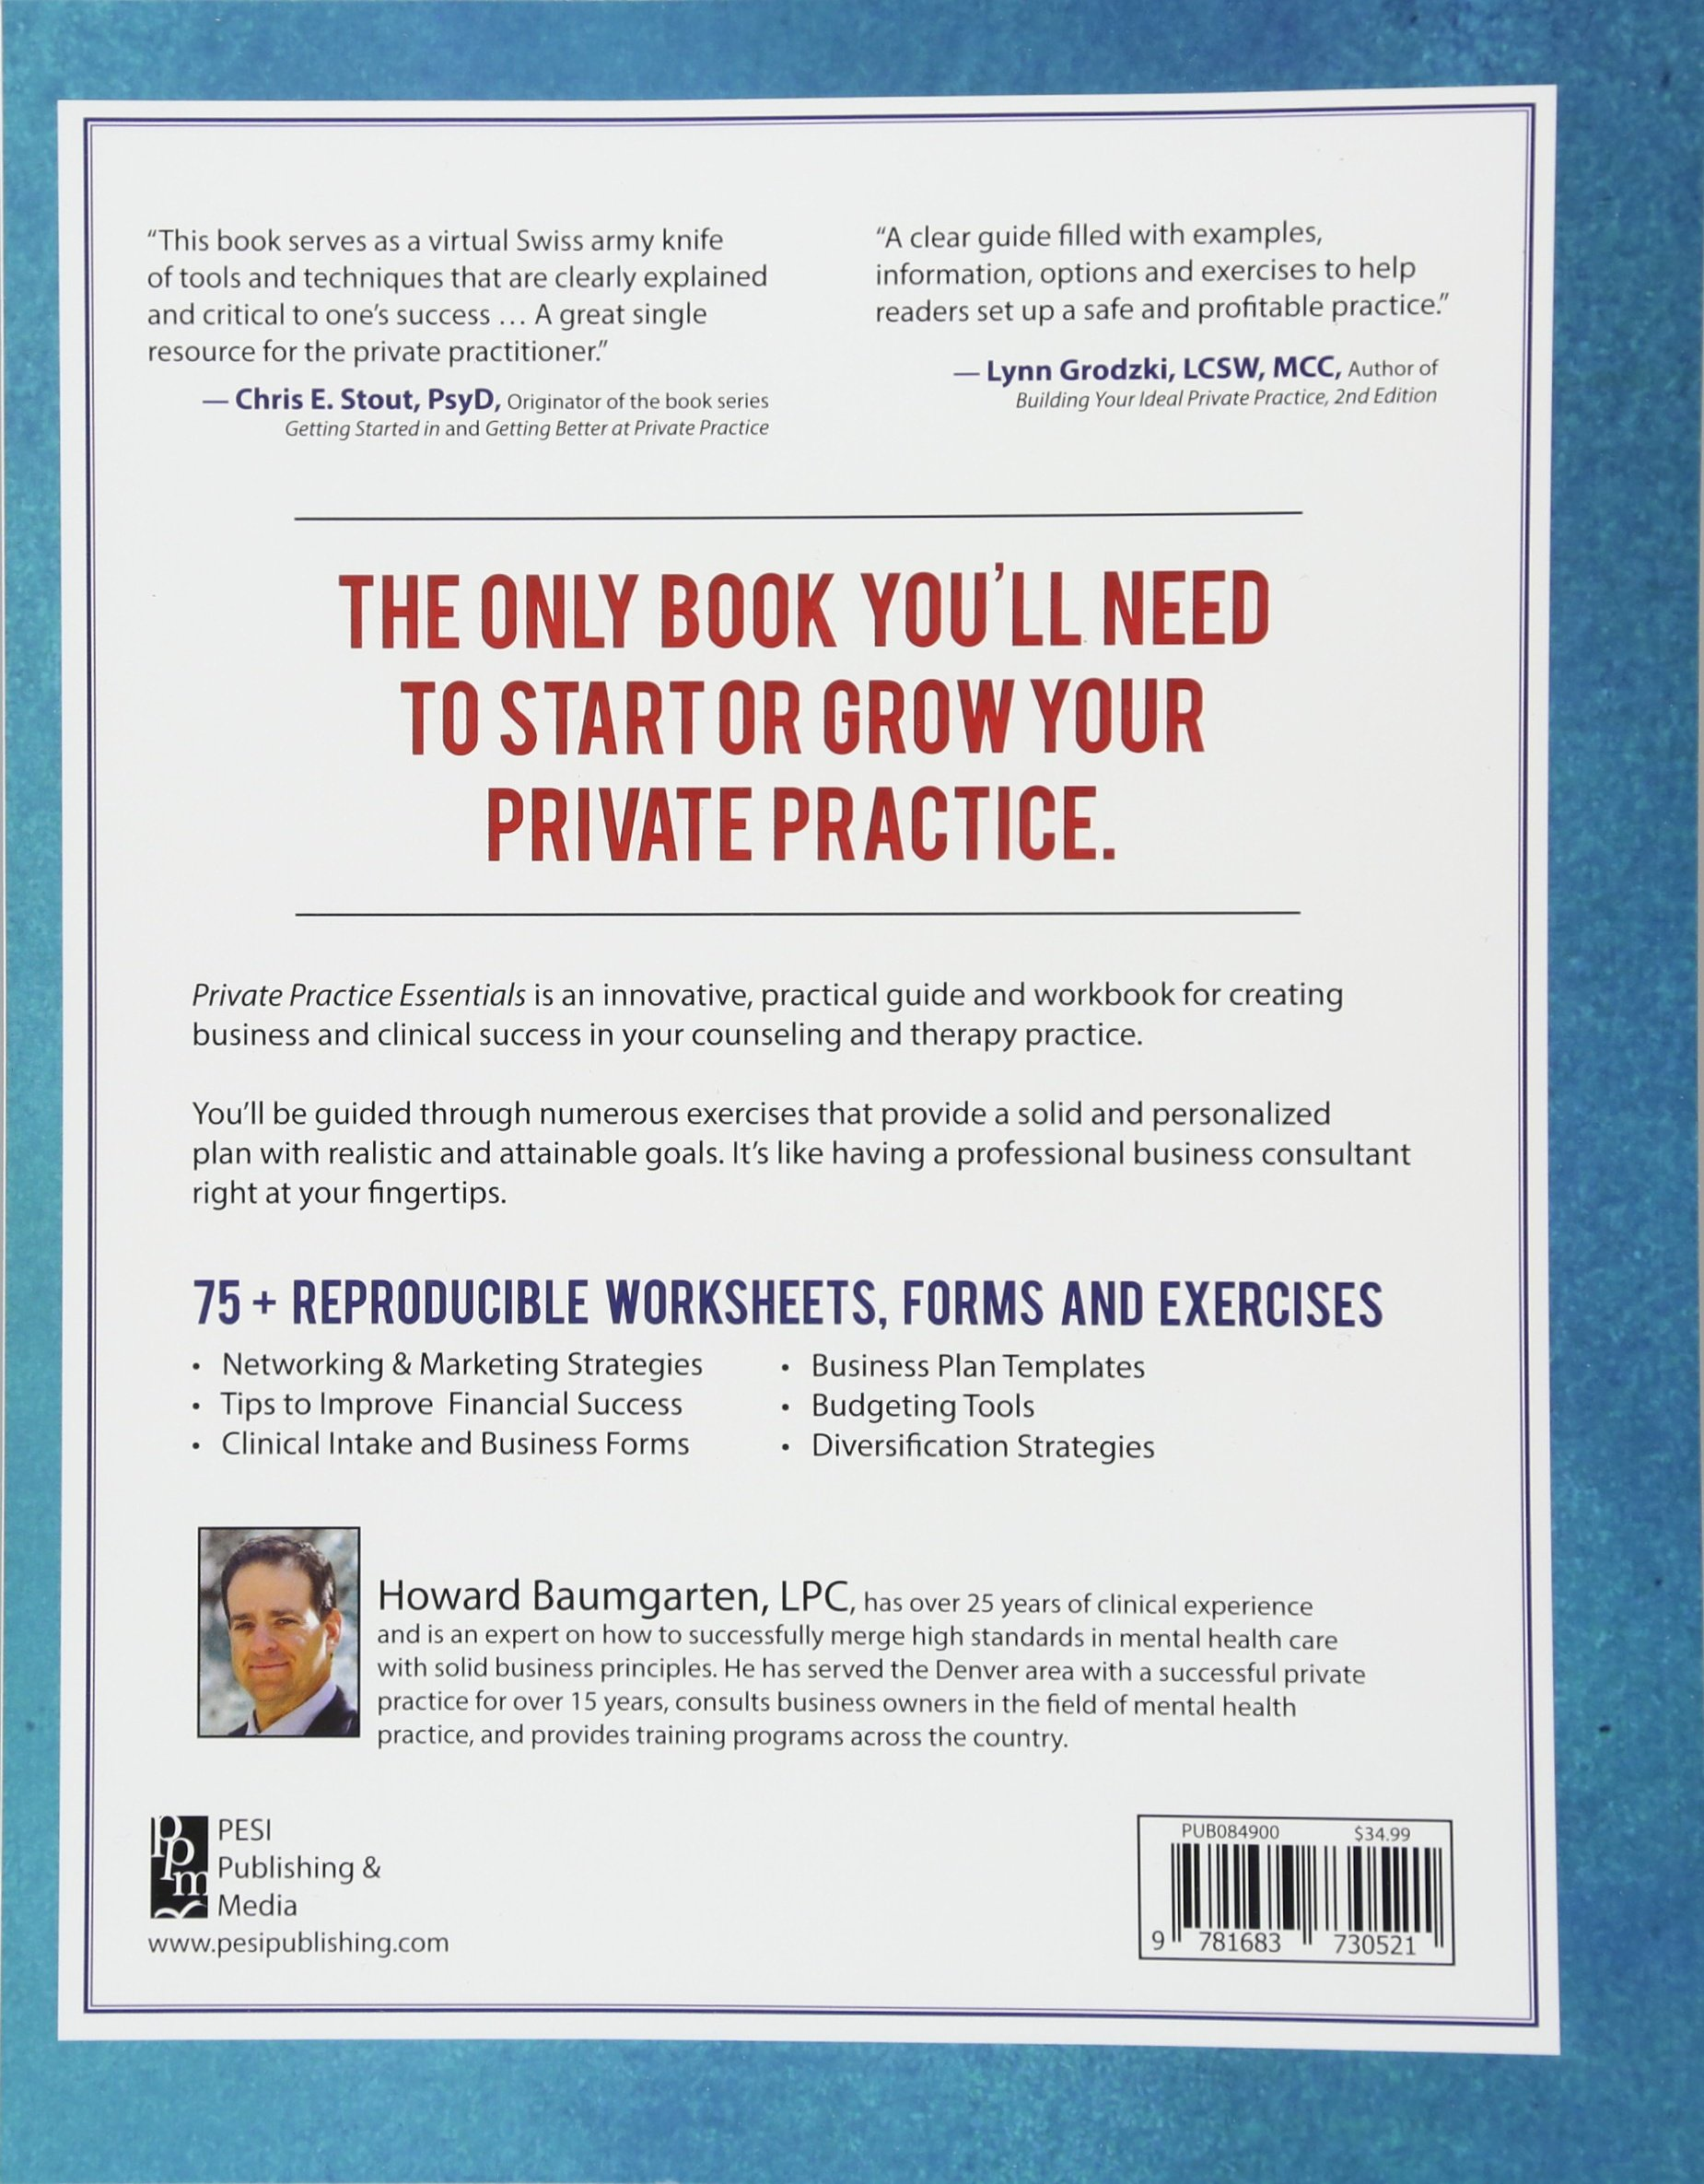 Private practice essentials business tools for mental health private practice essentials business tools for mental health professionals howard baumgarten 9781683730521 amazon books wajeb Image collections